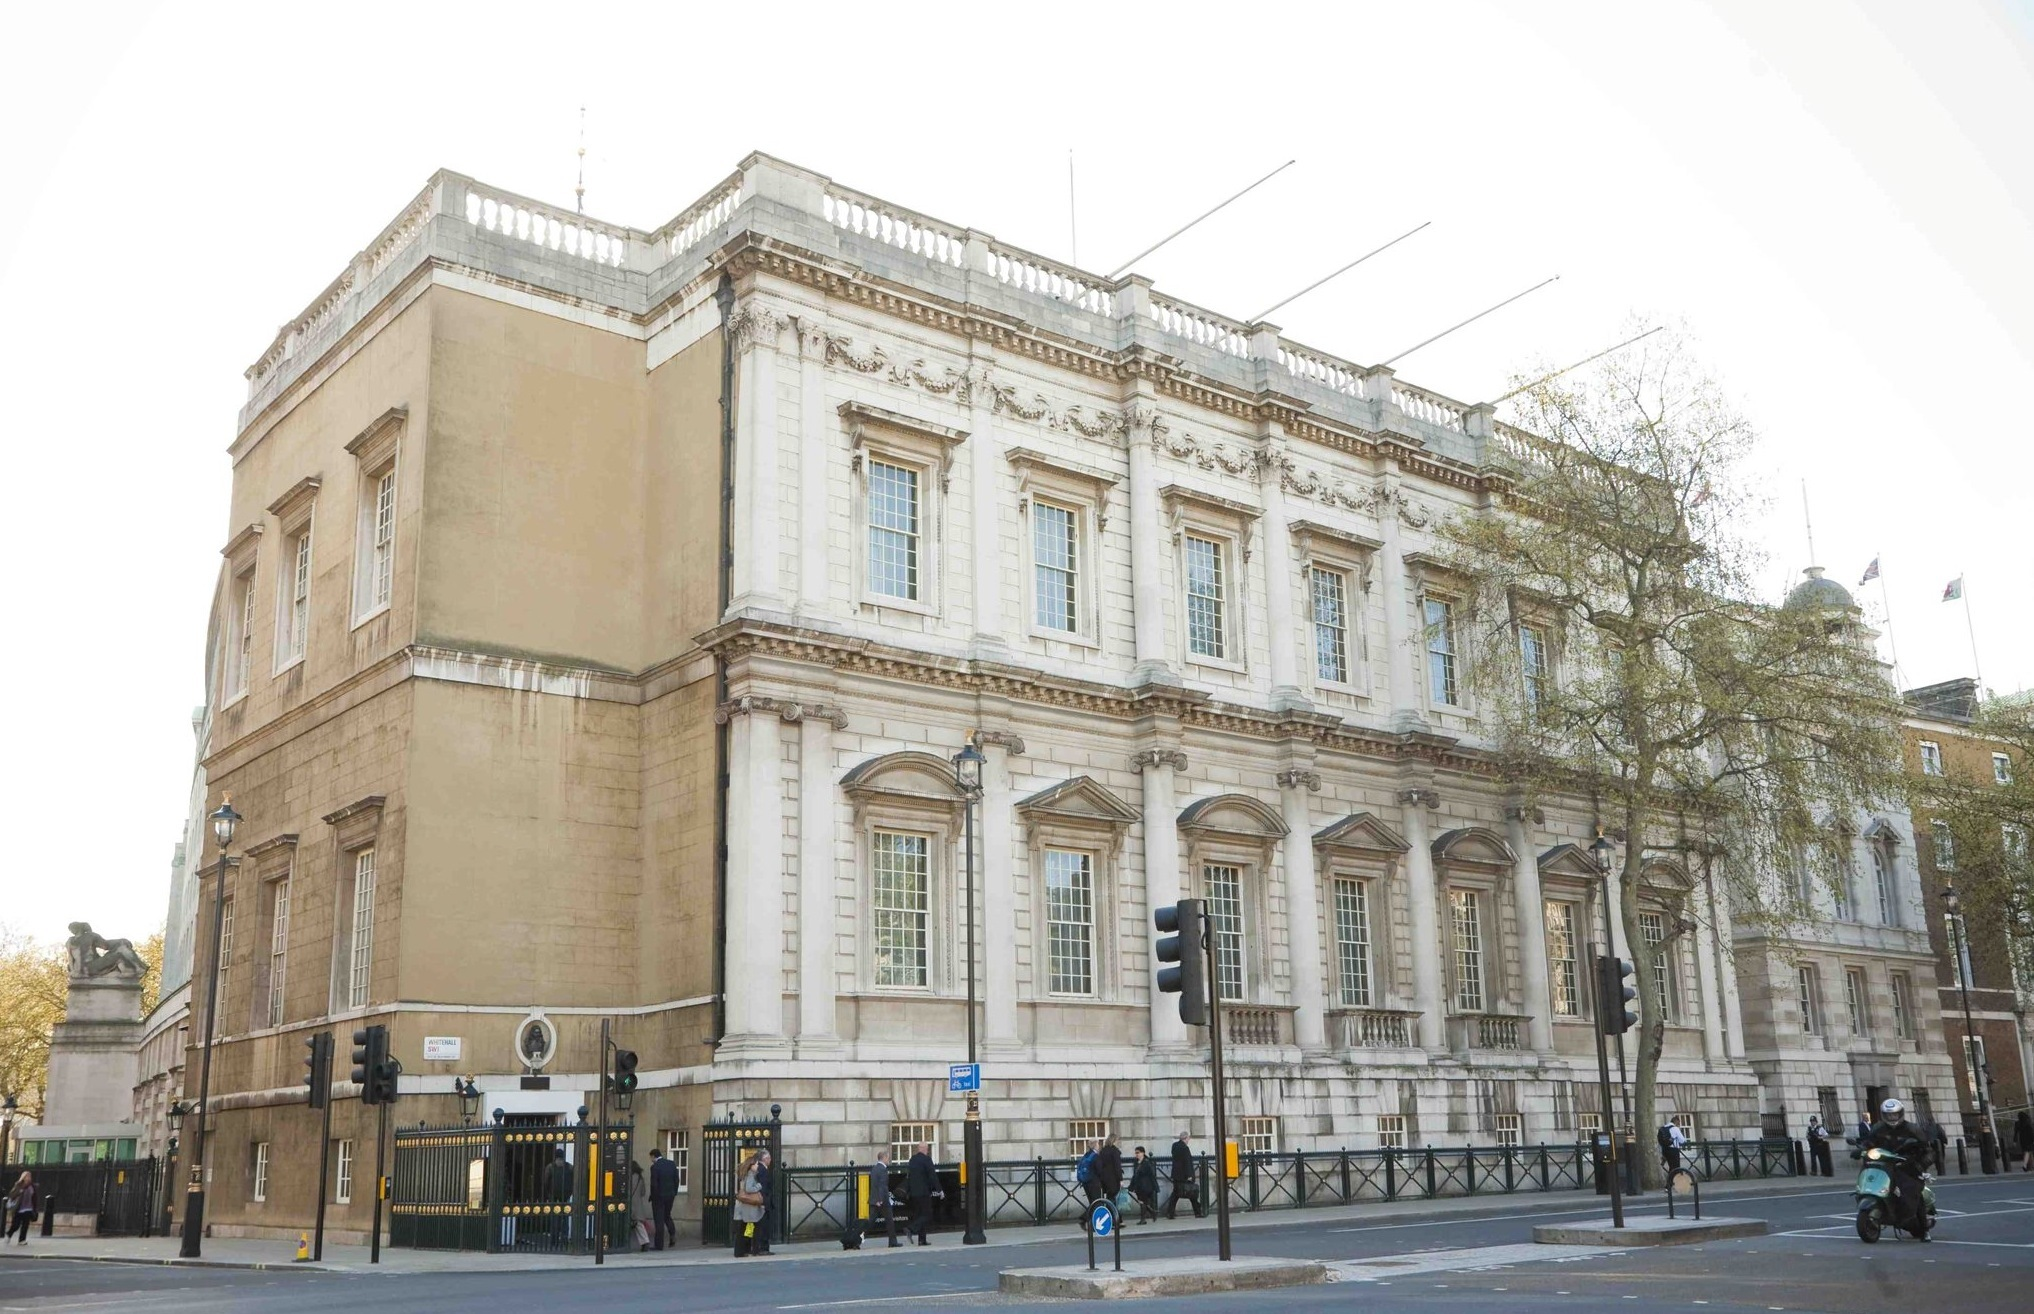 Banqueting House Attractions In Whitehall London